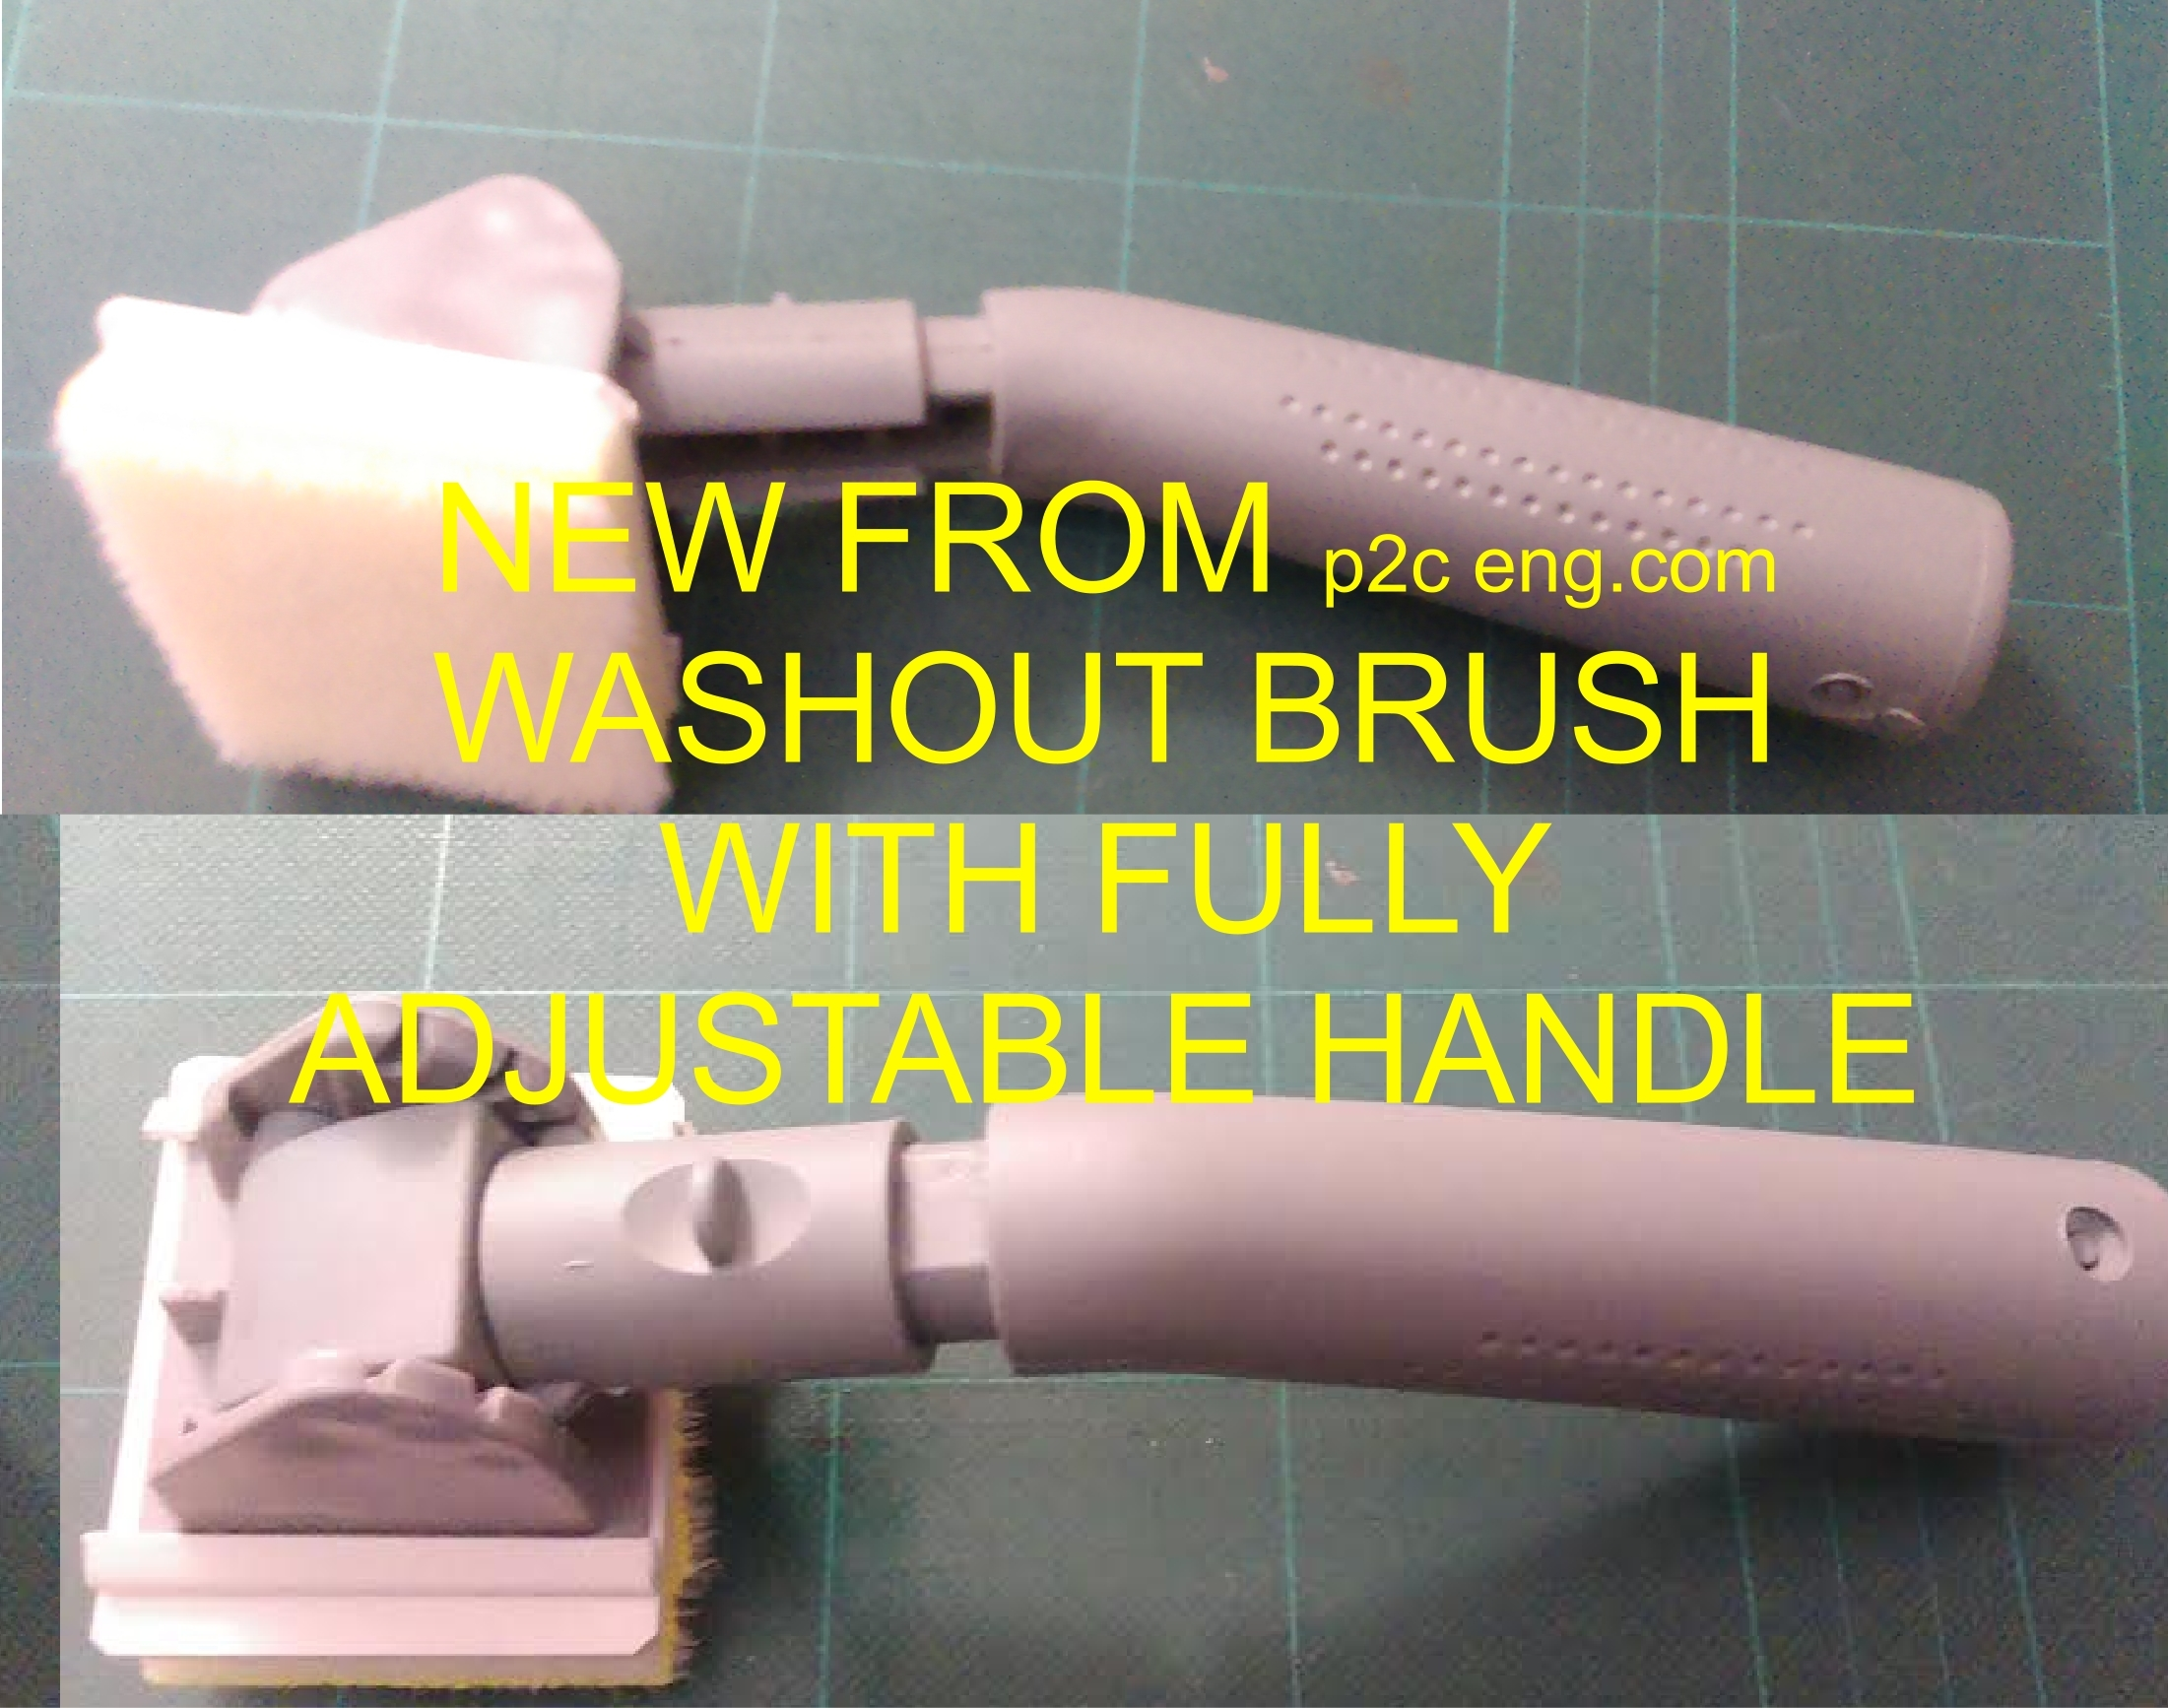 WASHOUT_PAD_WITH_ADJUSTABLE_HANDLE